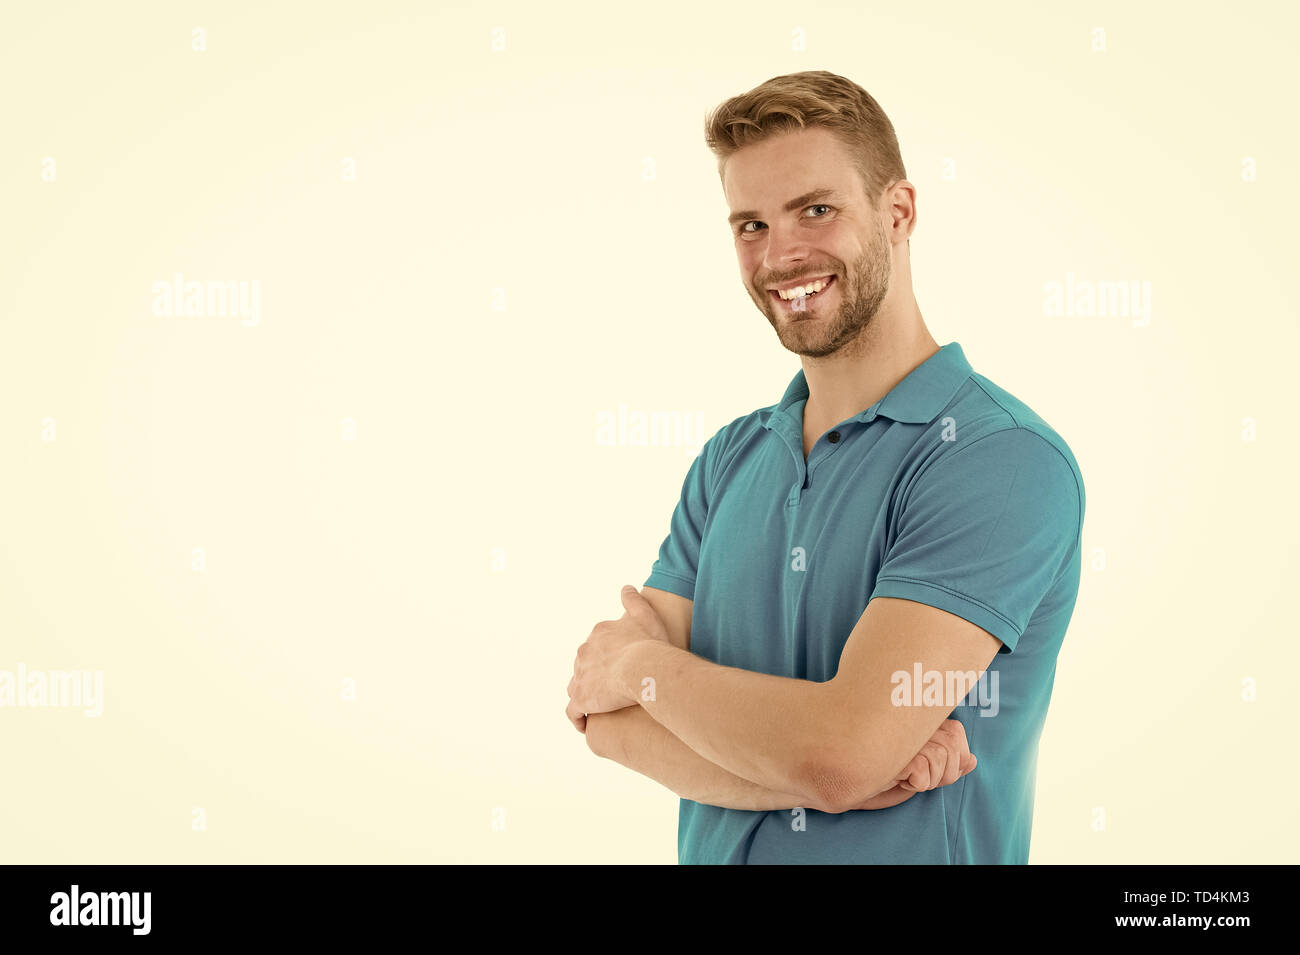 Man sport clothes isolated on white background. Bearded man in blue casual clothes. Sport fashion style and trend. Fitness and gym clothes. Macho wear clothes for active lifestyle workout or training. - Stock Image